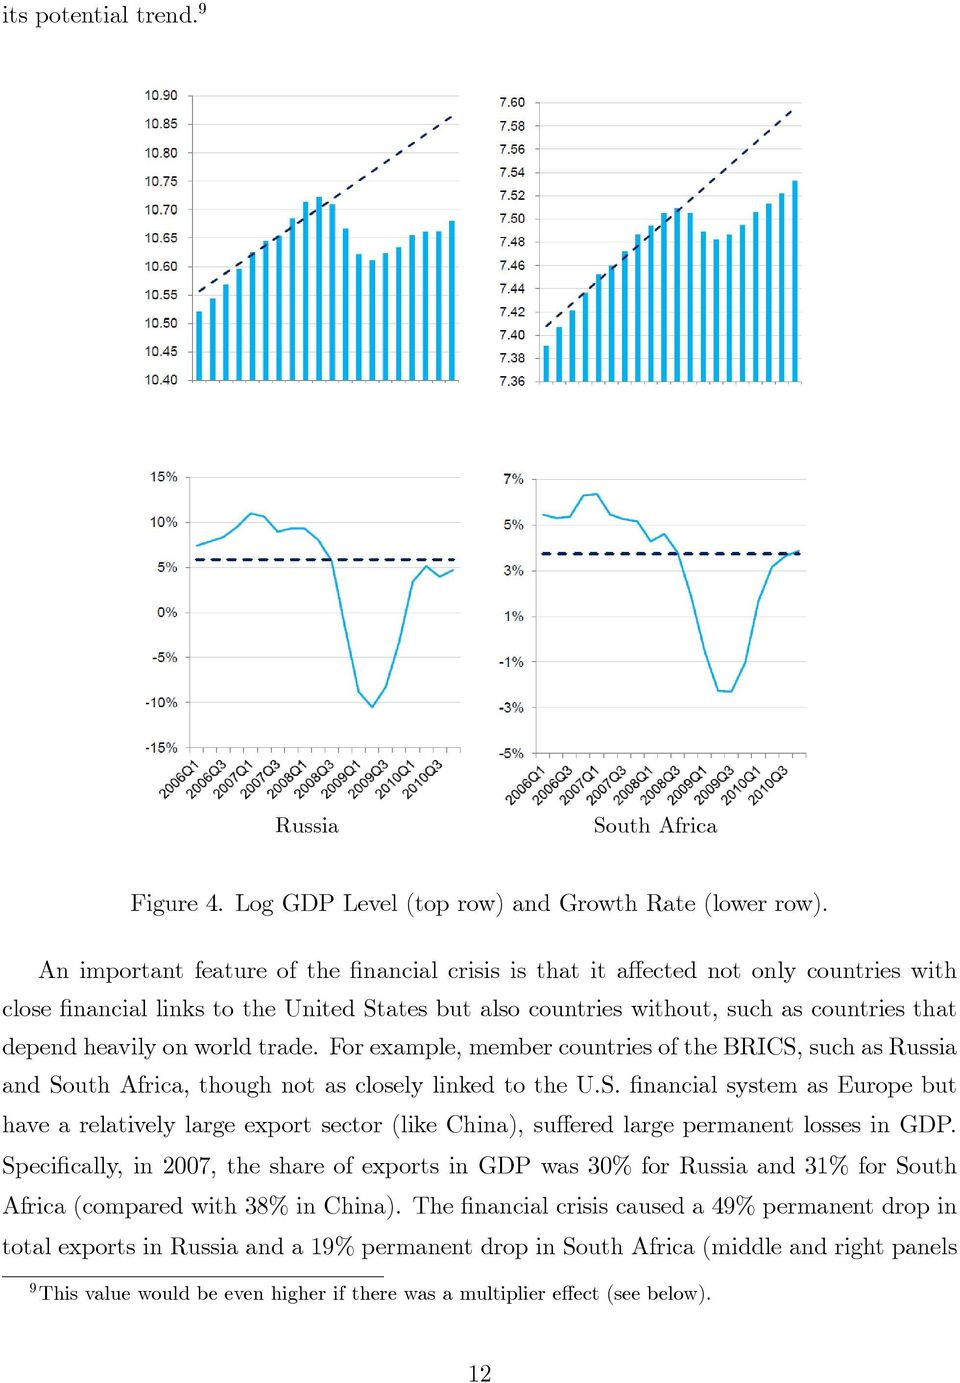 For example, member counries of he BRICS, such as Russia and Souh Africa, hough no as closely linked o he U.S. nancial sysem as Europe bu have a relaively large expor secor (like China), su ered large permanen losses in GDP.